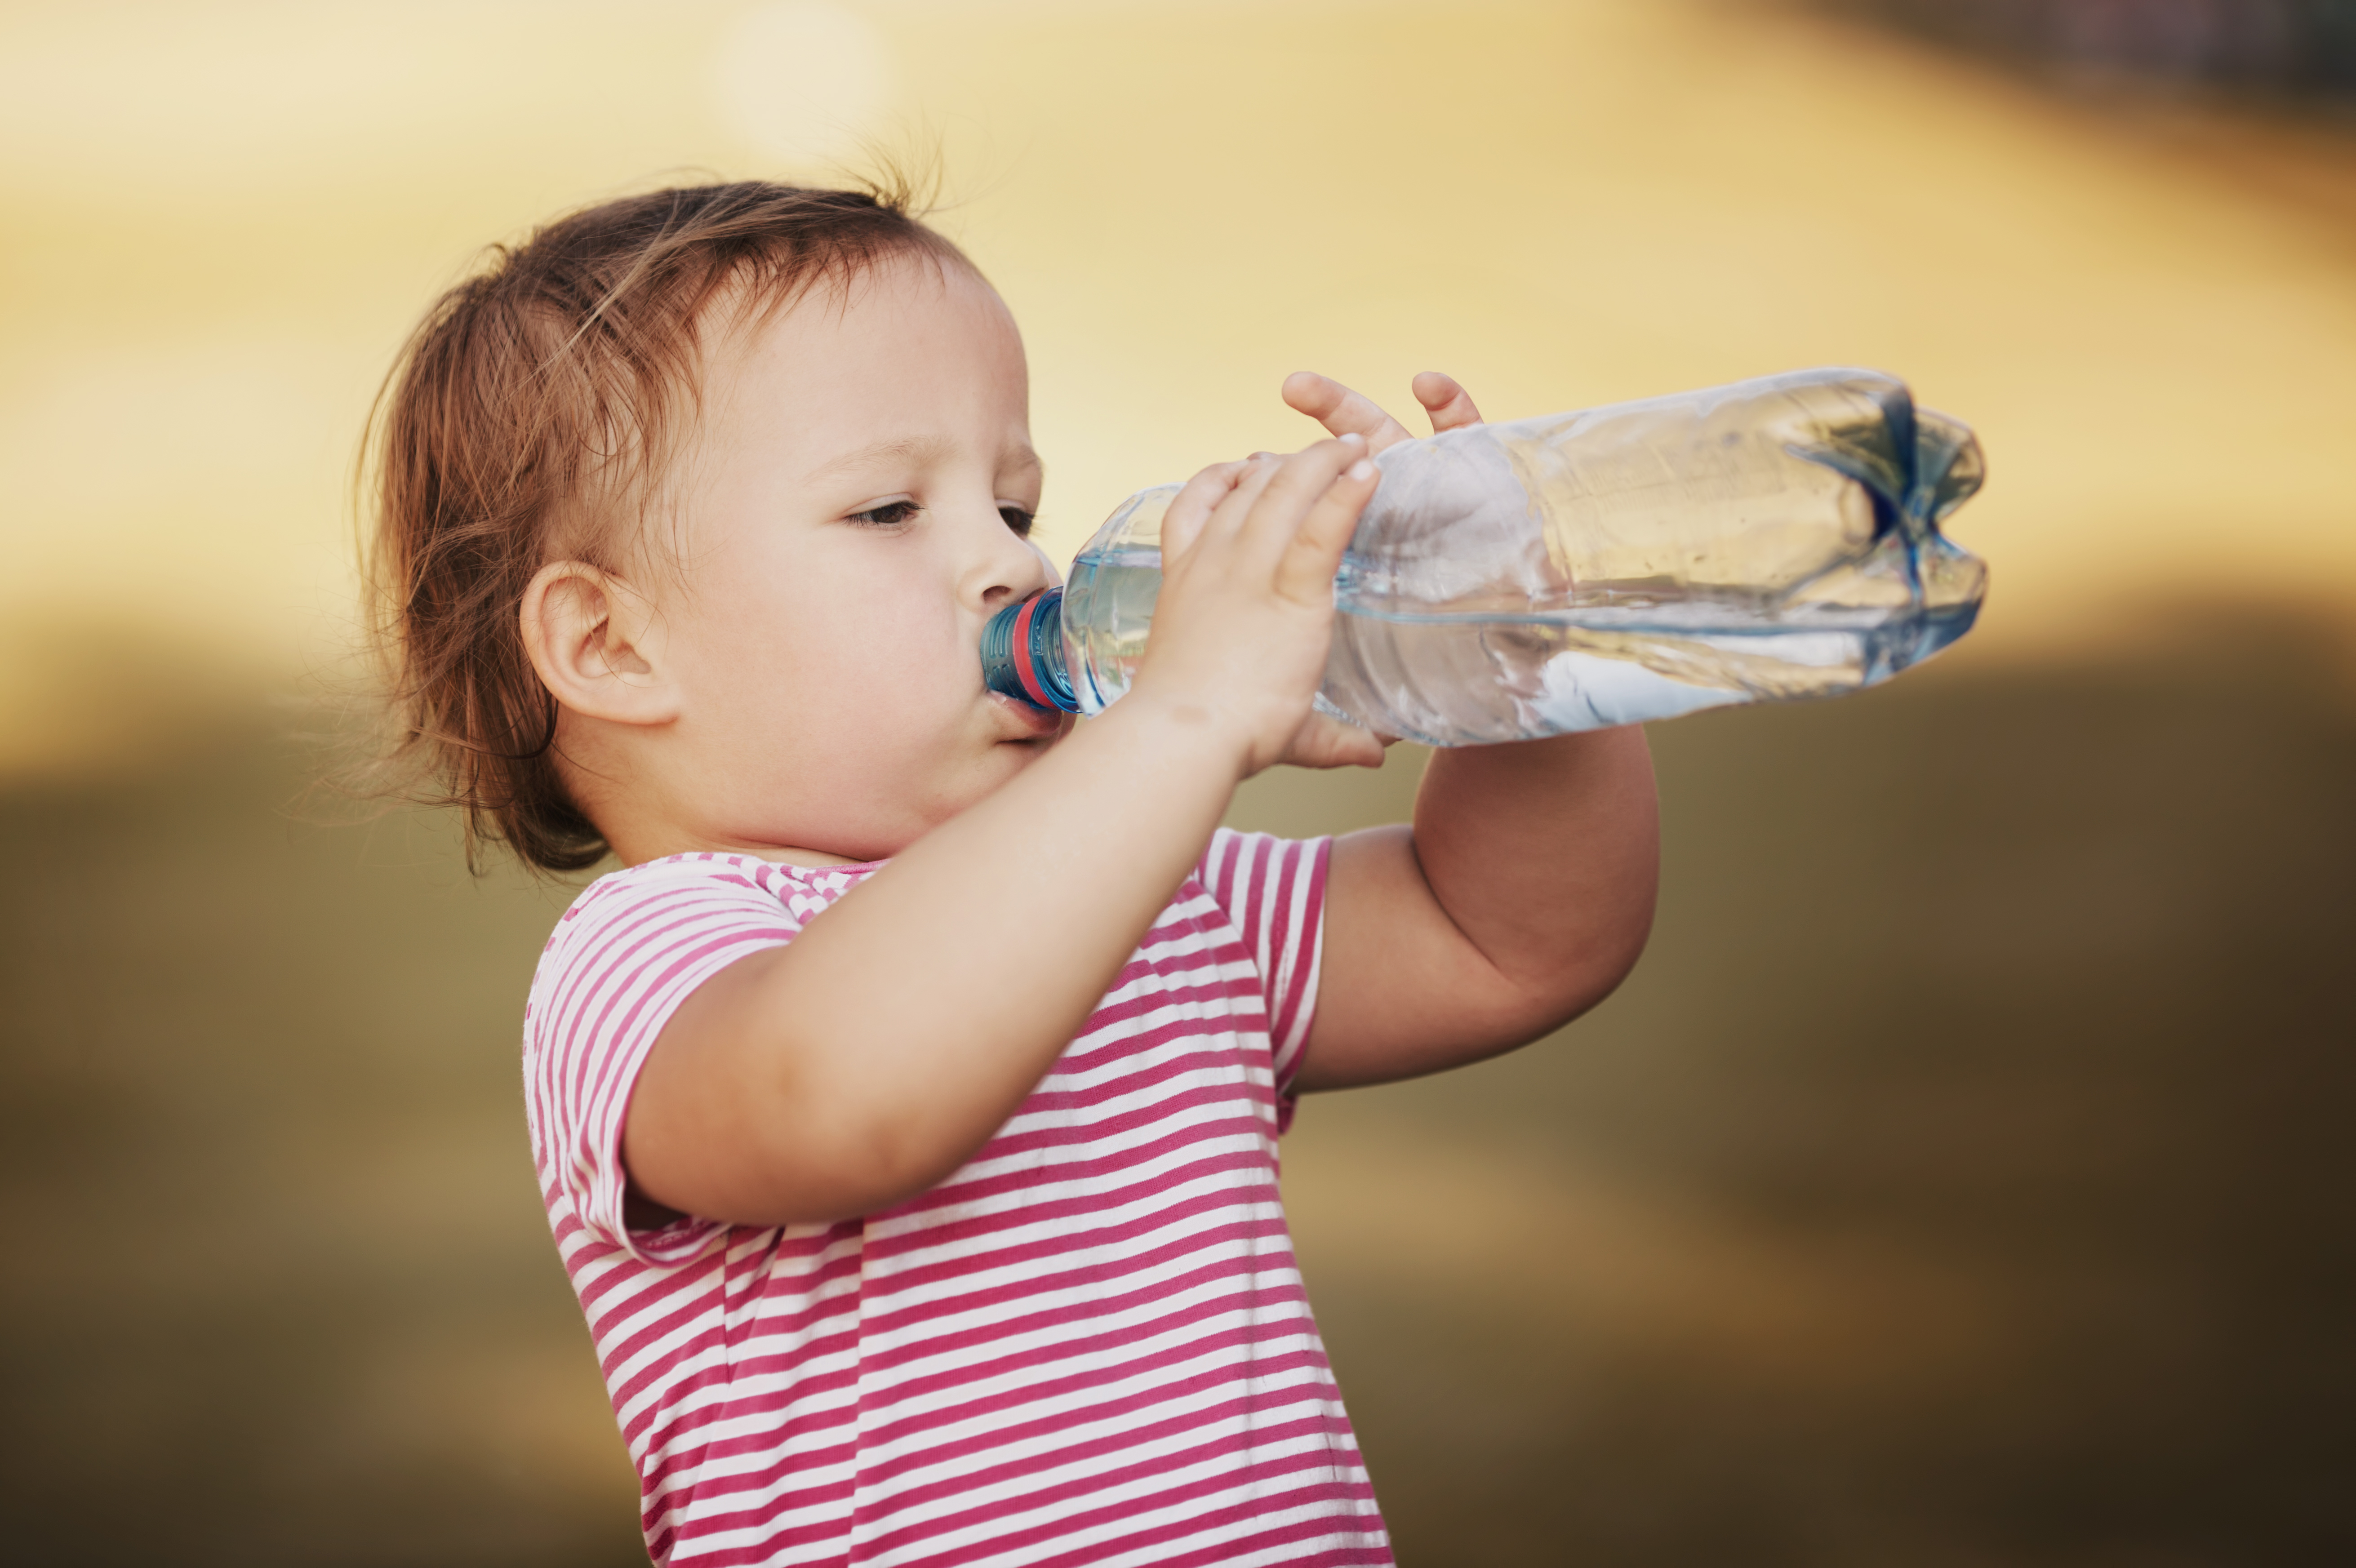 little girl drinking water from a plastic bottle